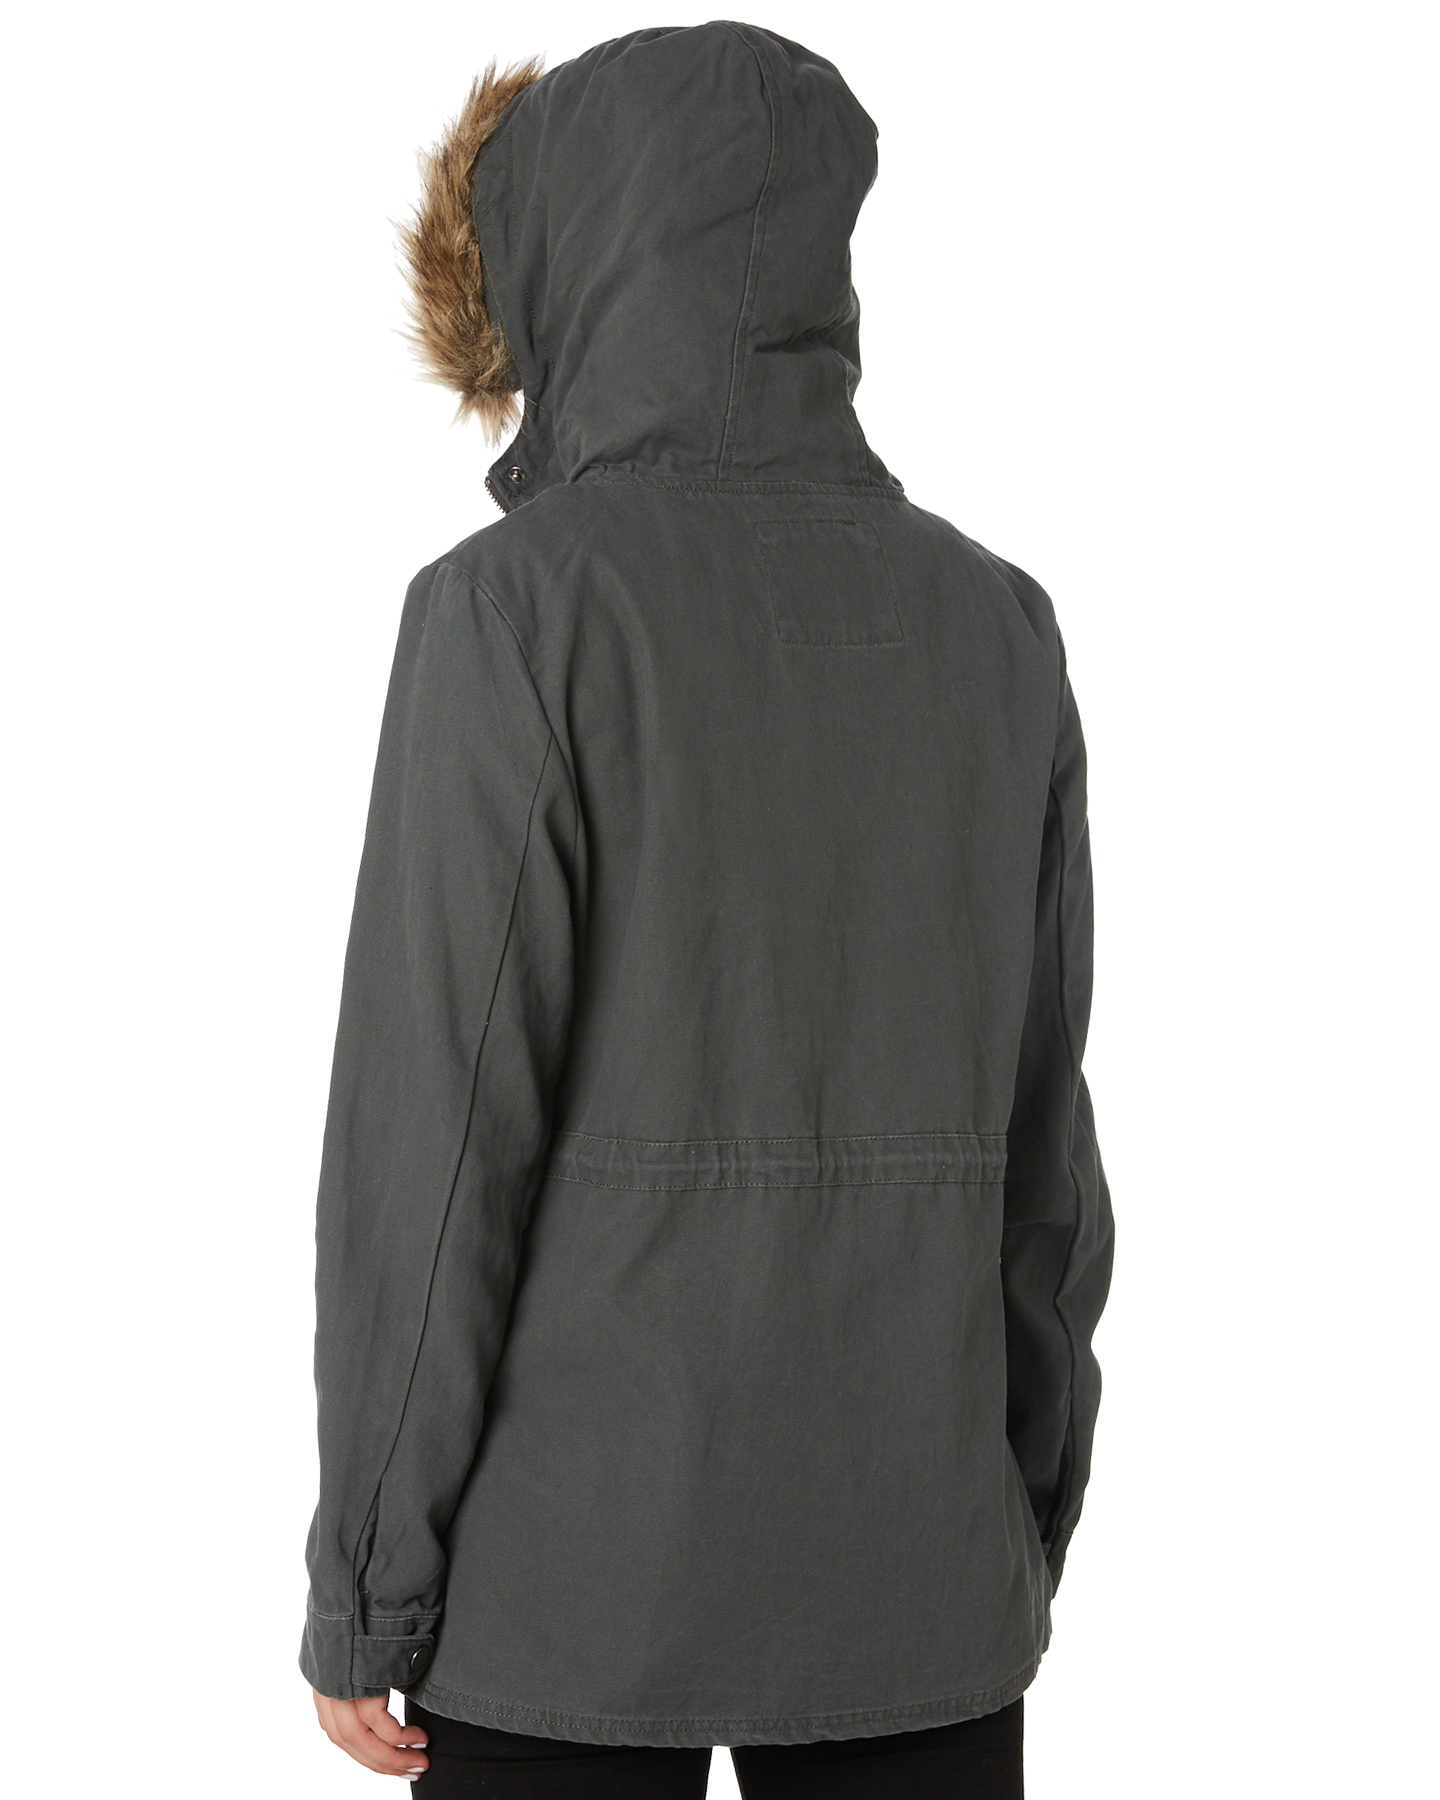 New-Swell-Women-039-s-Fleur-Hooded-Anorak-Cotton-Canvas-Grey thumbnail 8